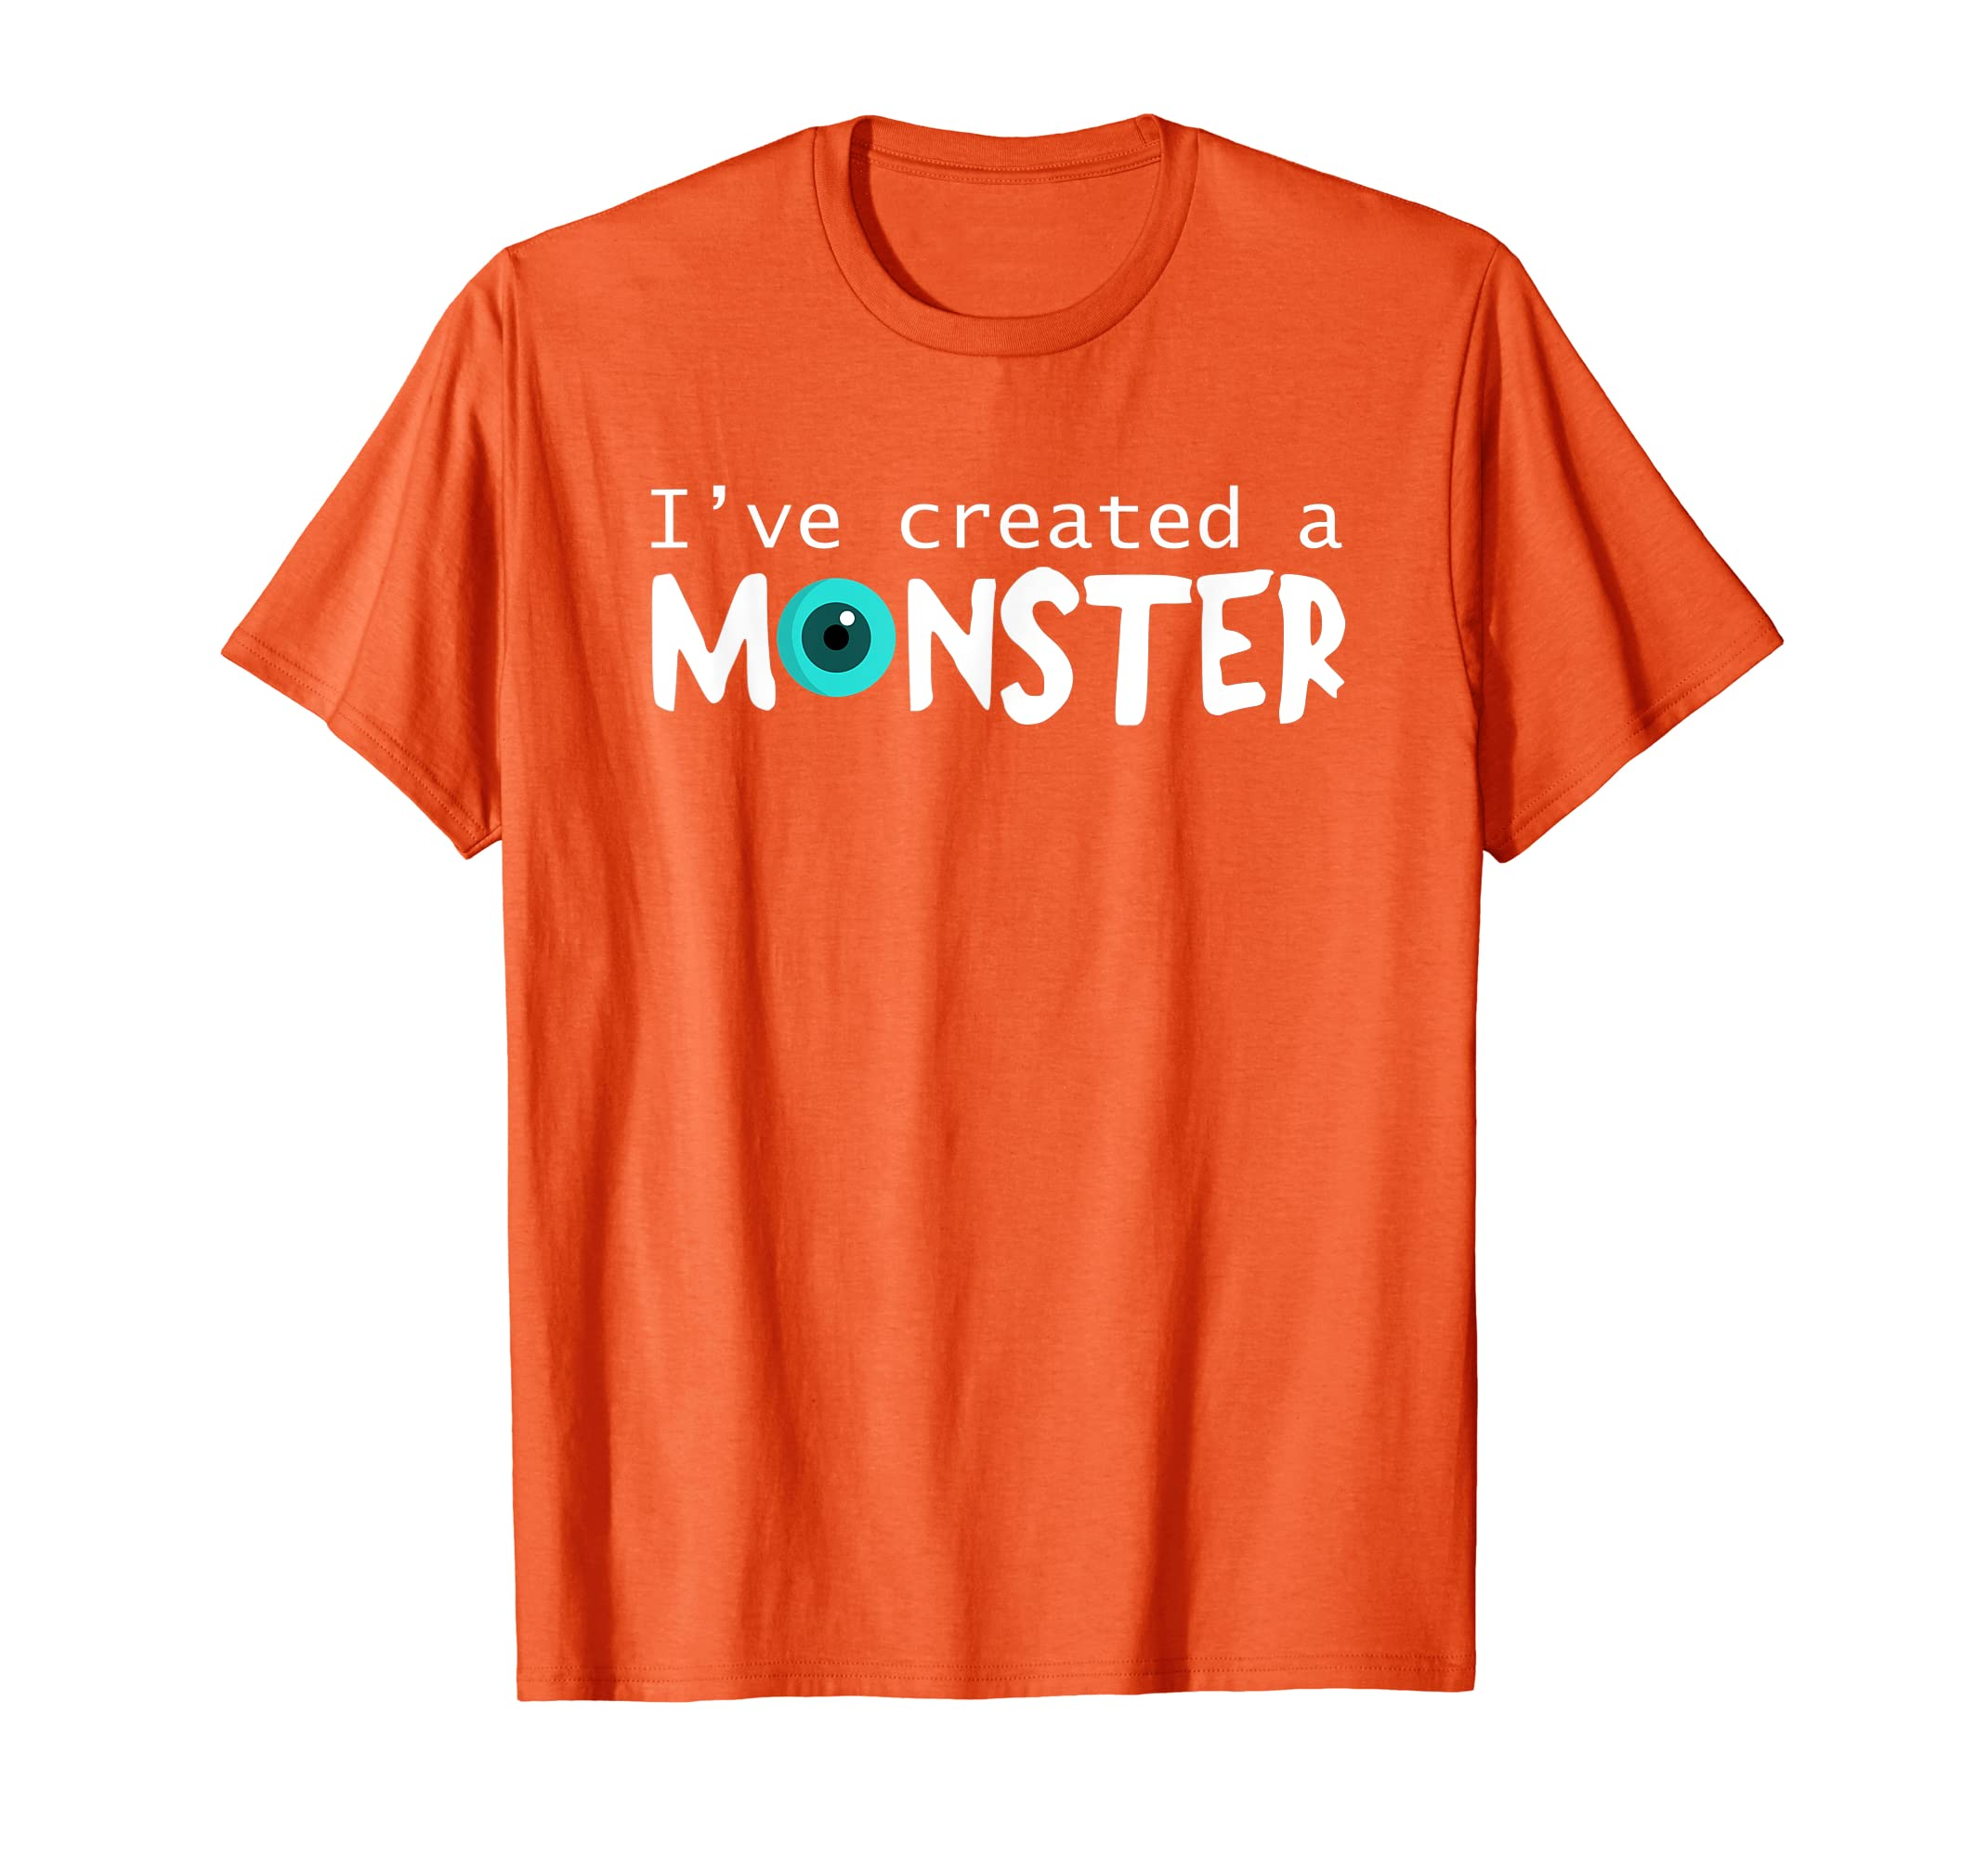 dfa38c51 Amazon.com: Matching Dad and Son Shirt I Created a Monster Set Funny Tee:  Clothing